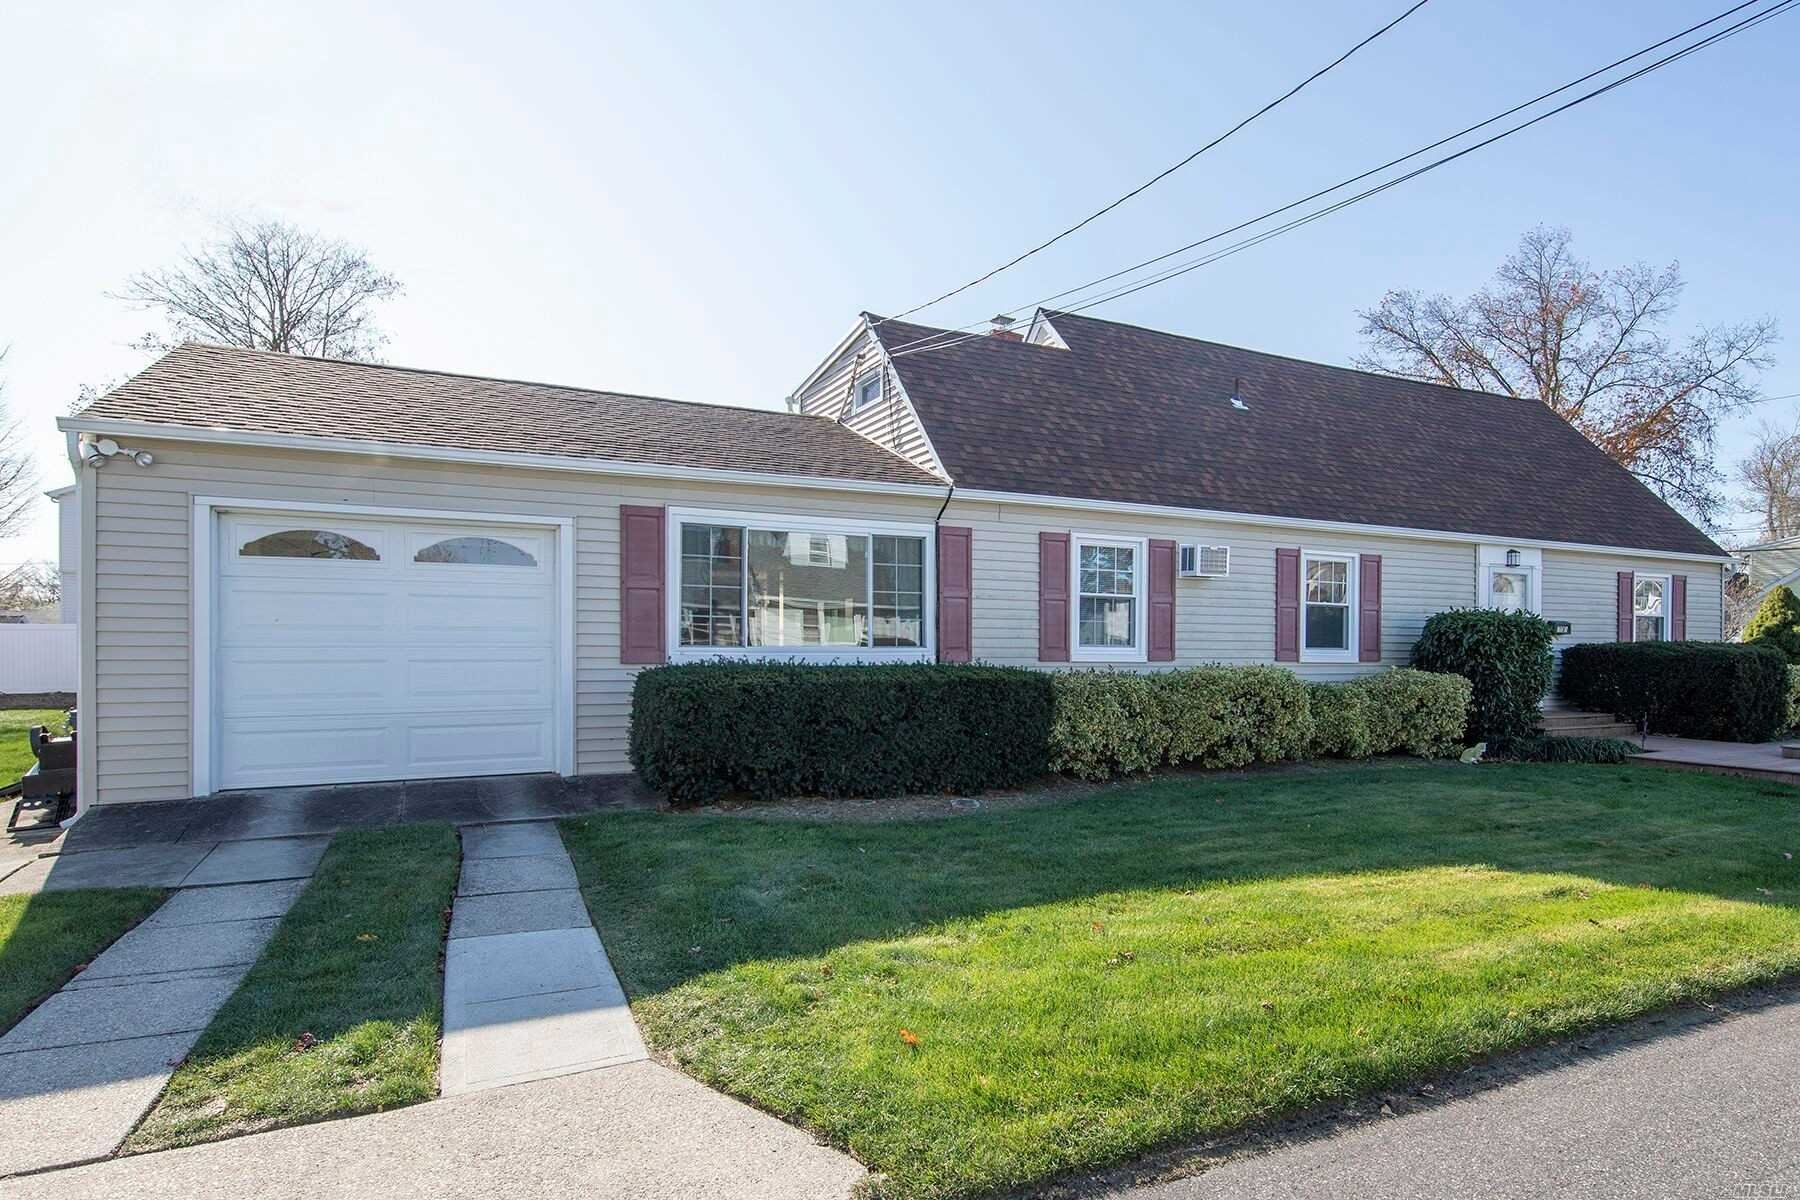 701 Bay 7th Street, West Islip, NY 11795 - MLS#: 3204079